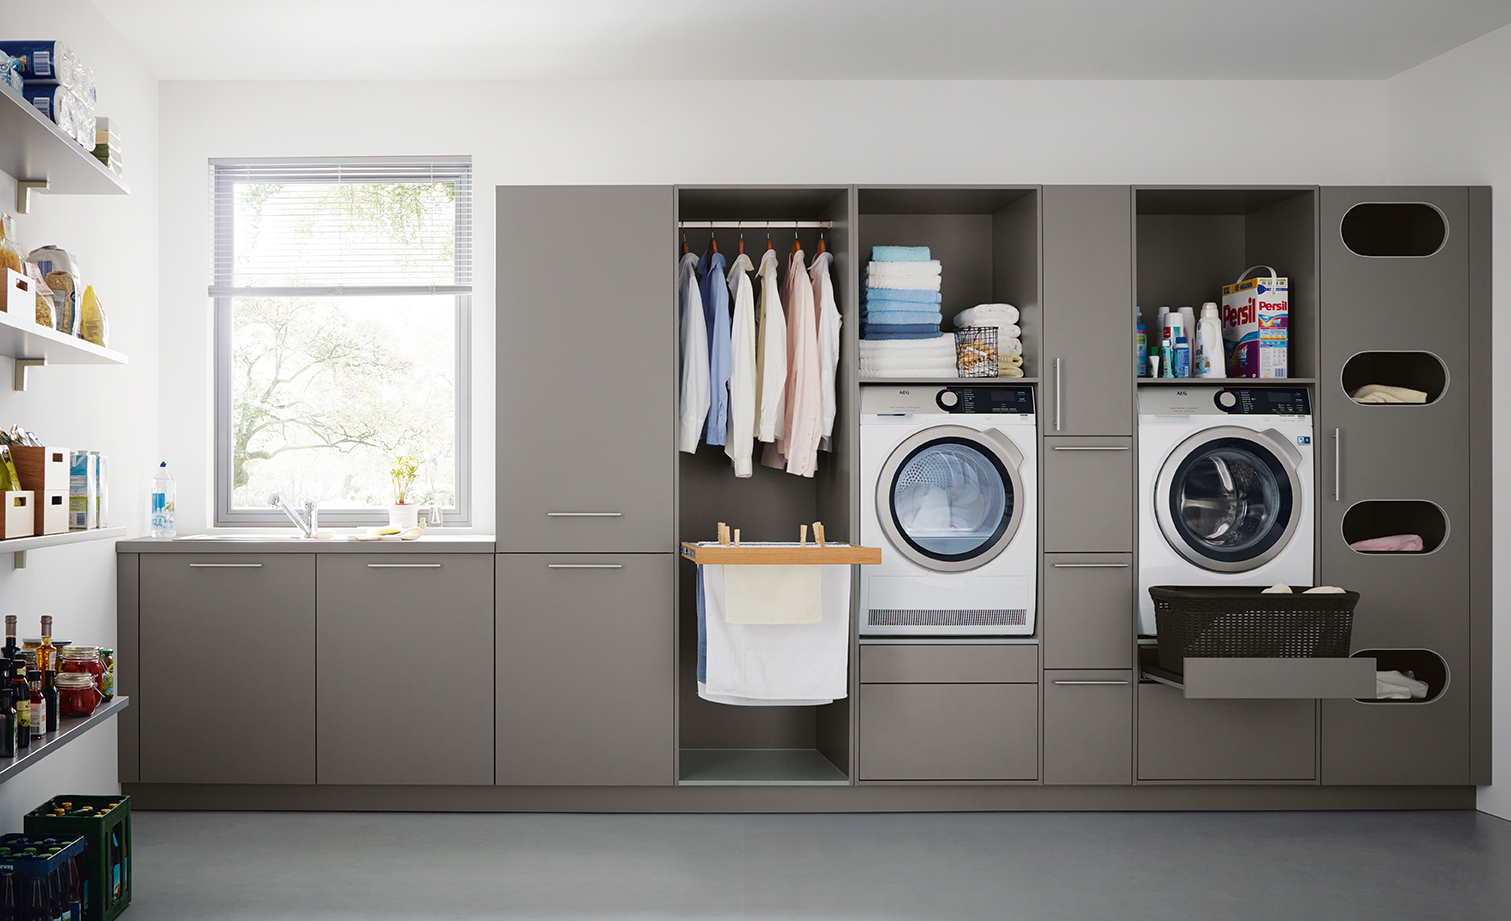 Kitchen Laundry Room Unit Home Consultation Uk